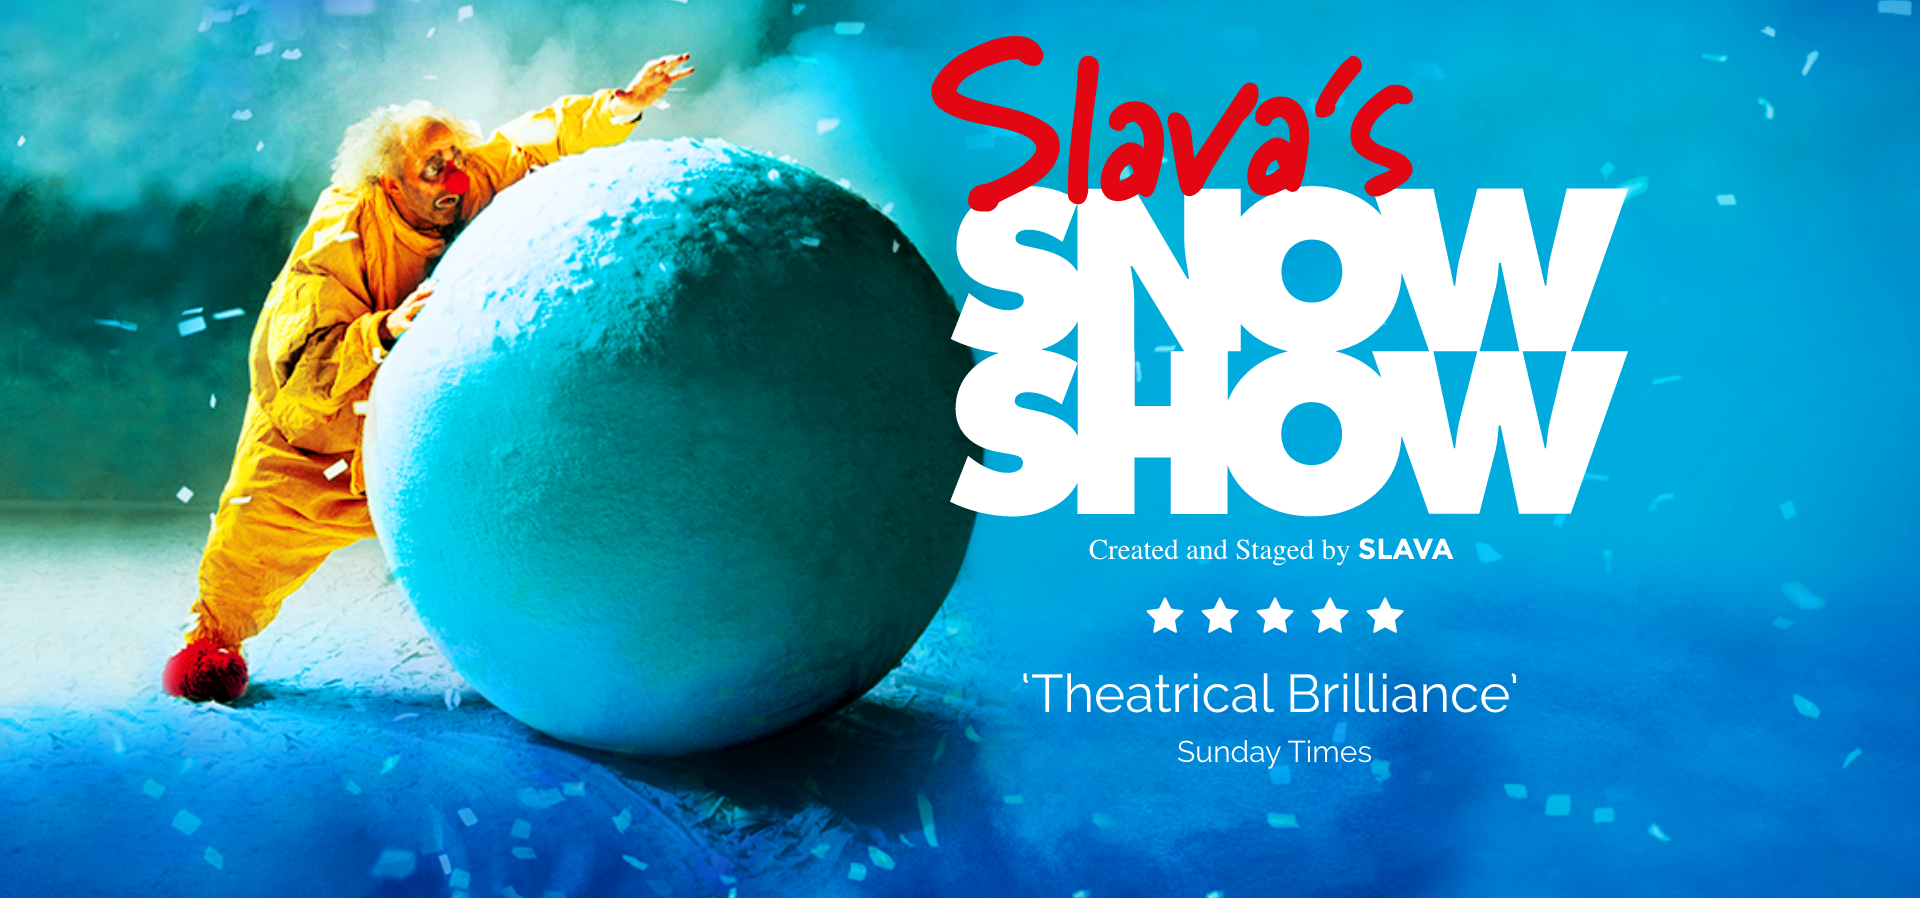 Slava's Snowshow at Stephen Sondheim Theater